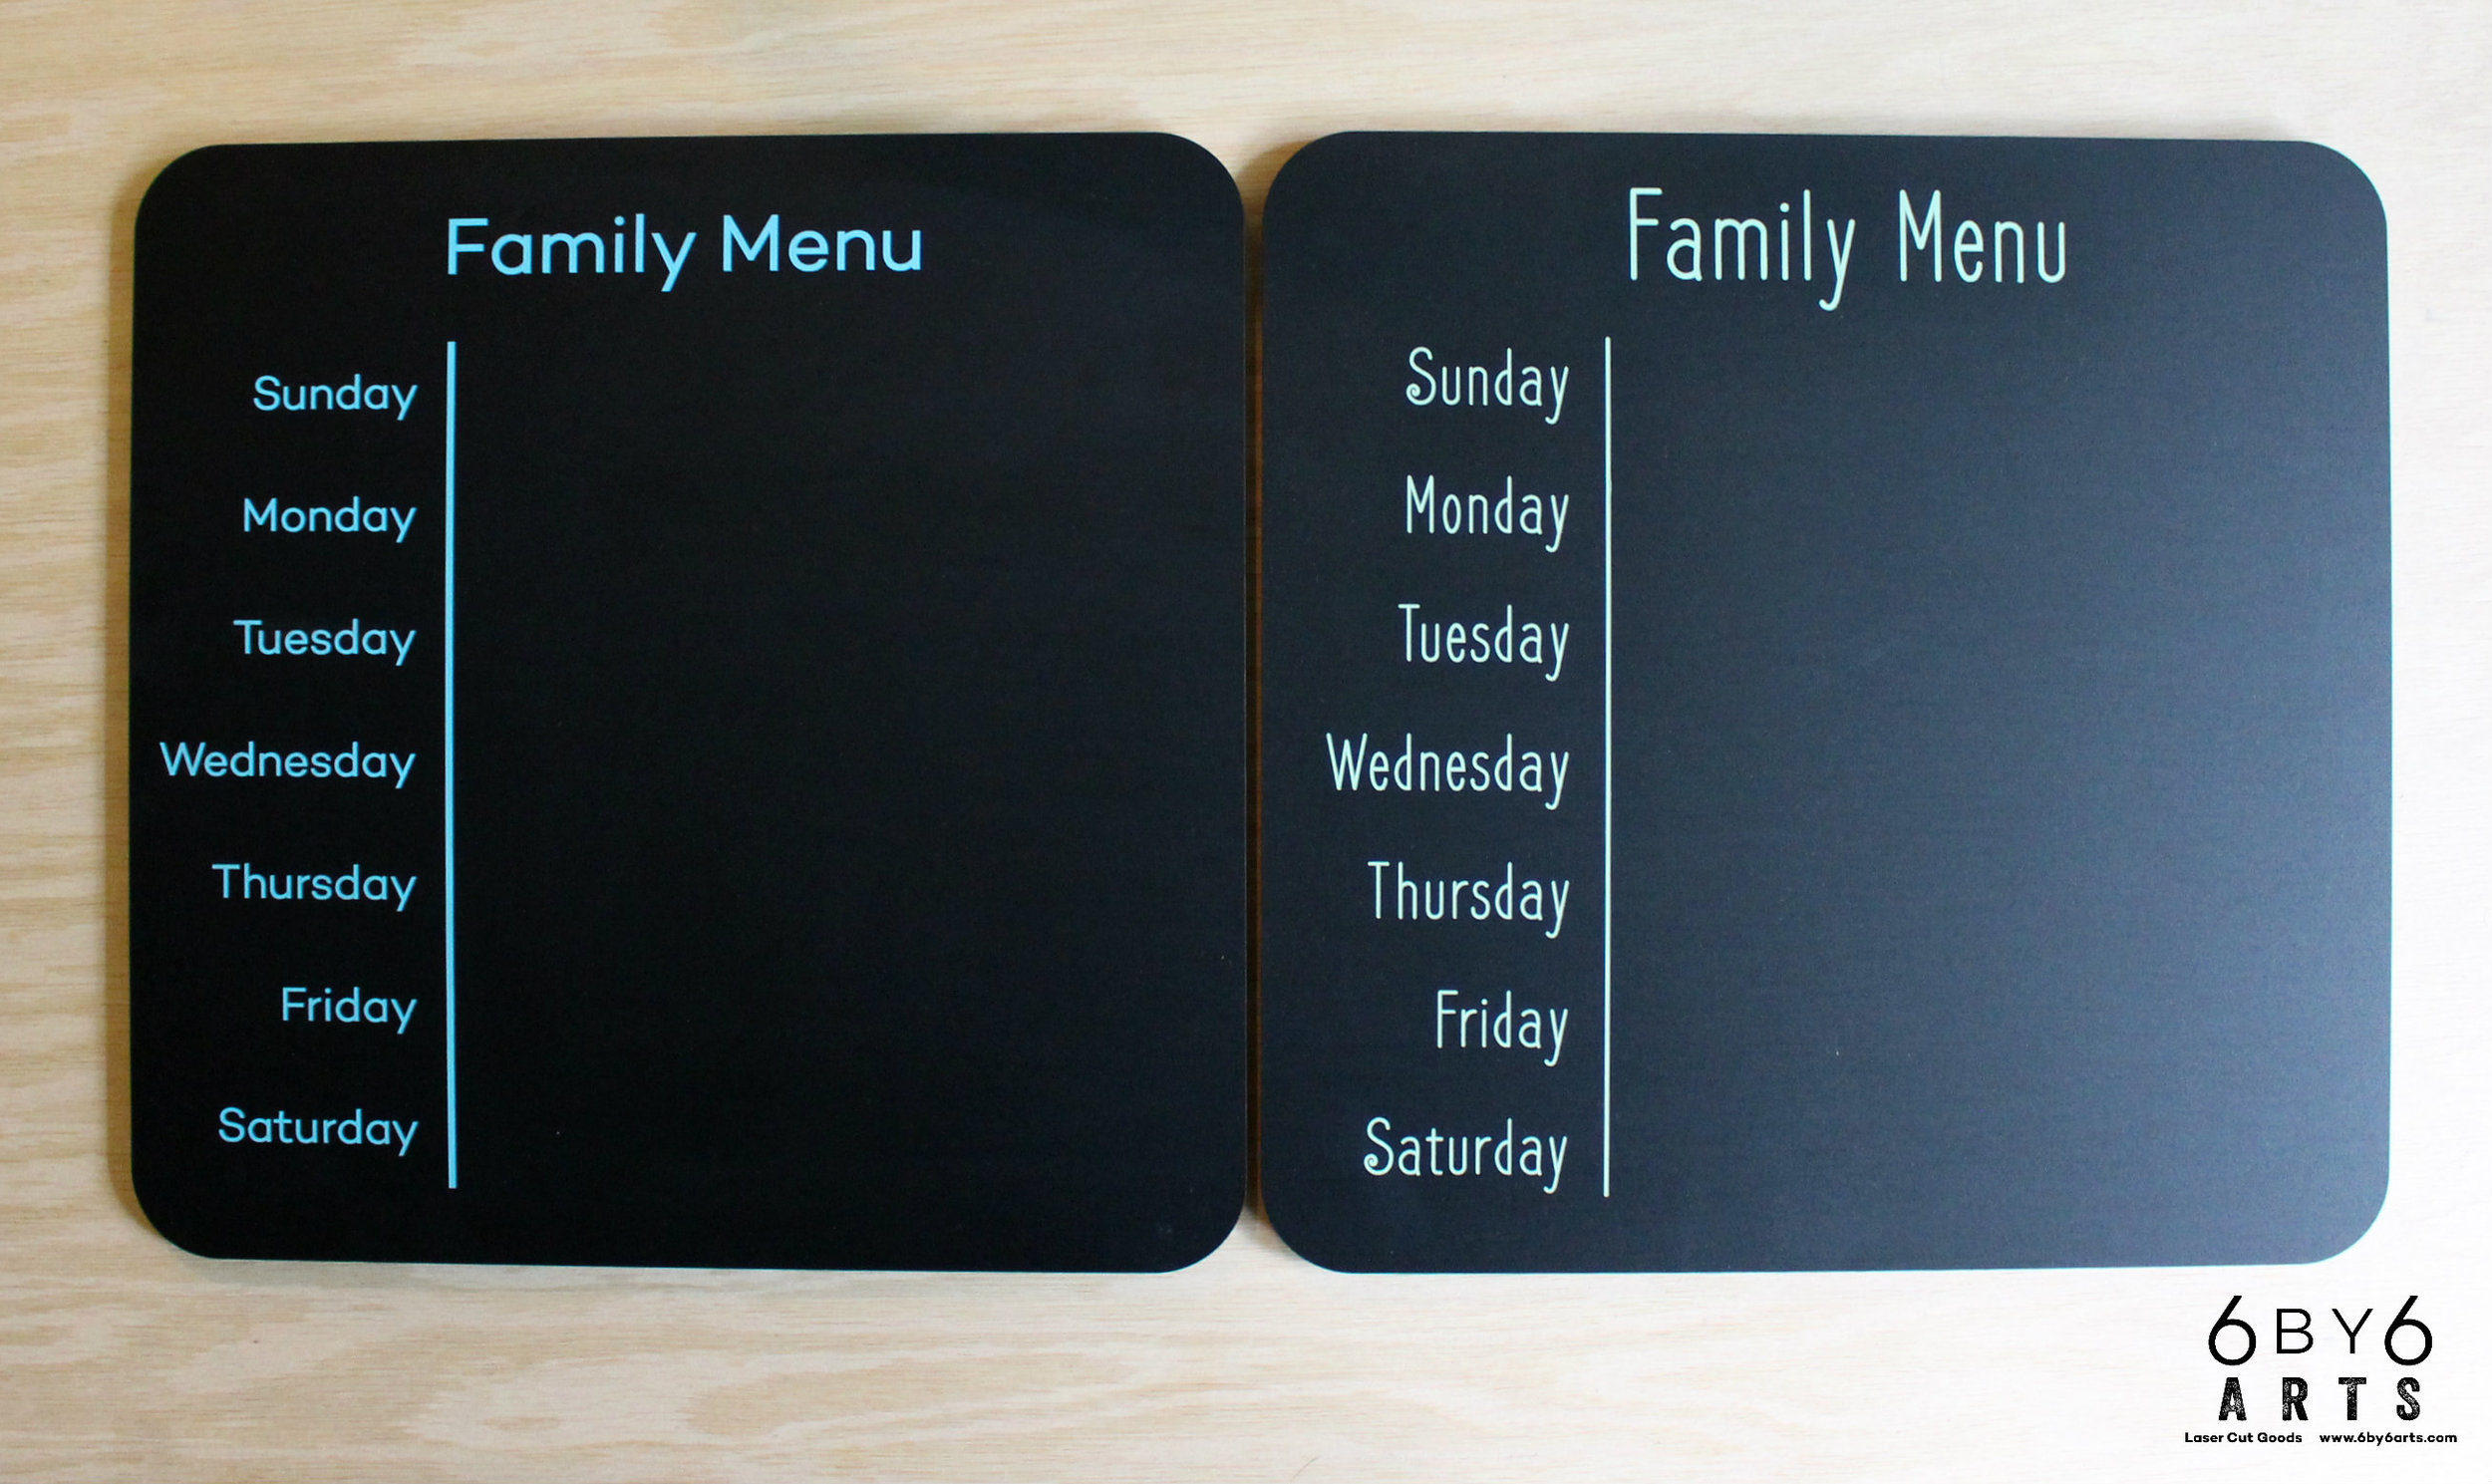 Family Menu Chalkboards - 6 by 6 Arts